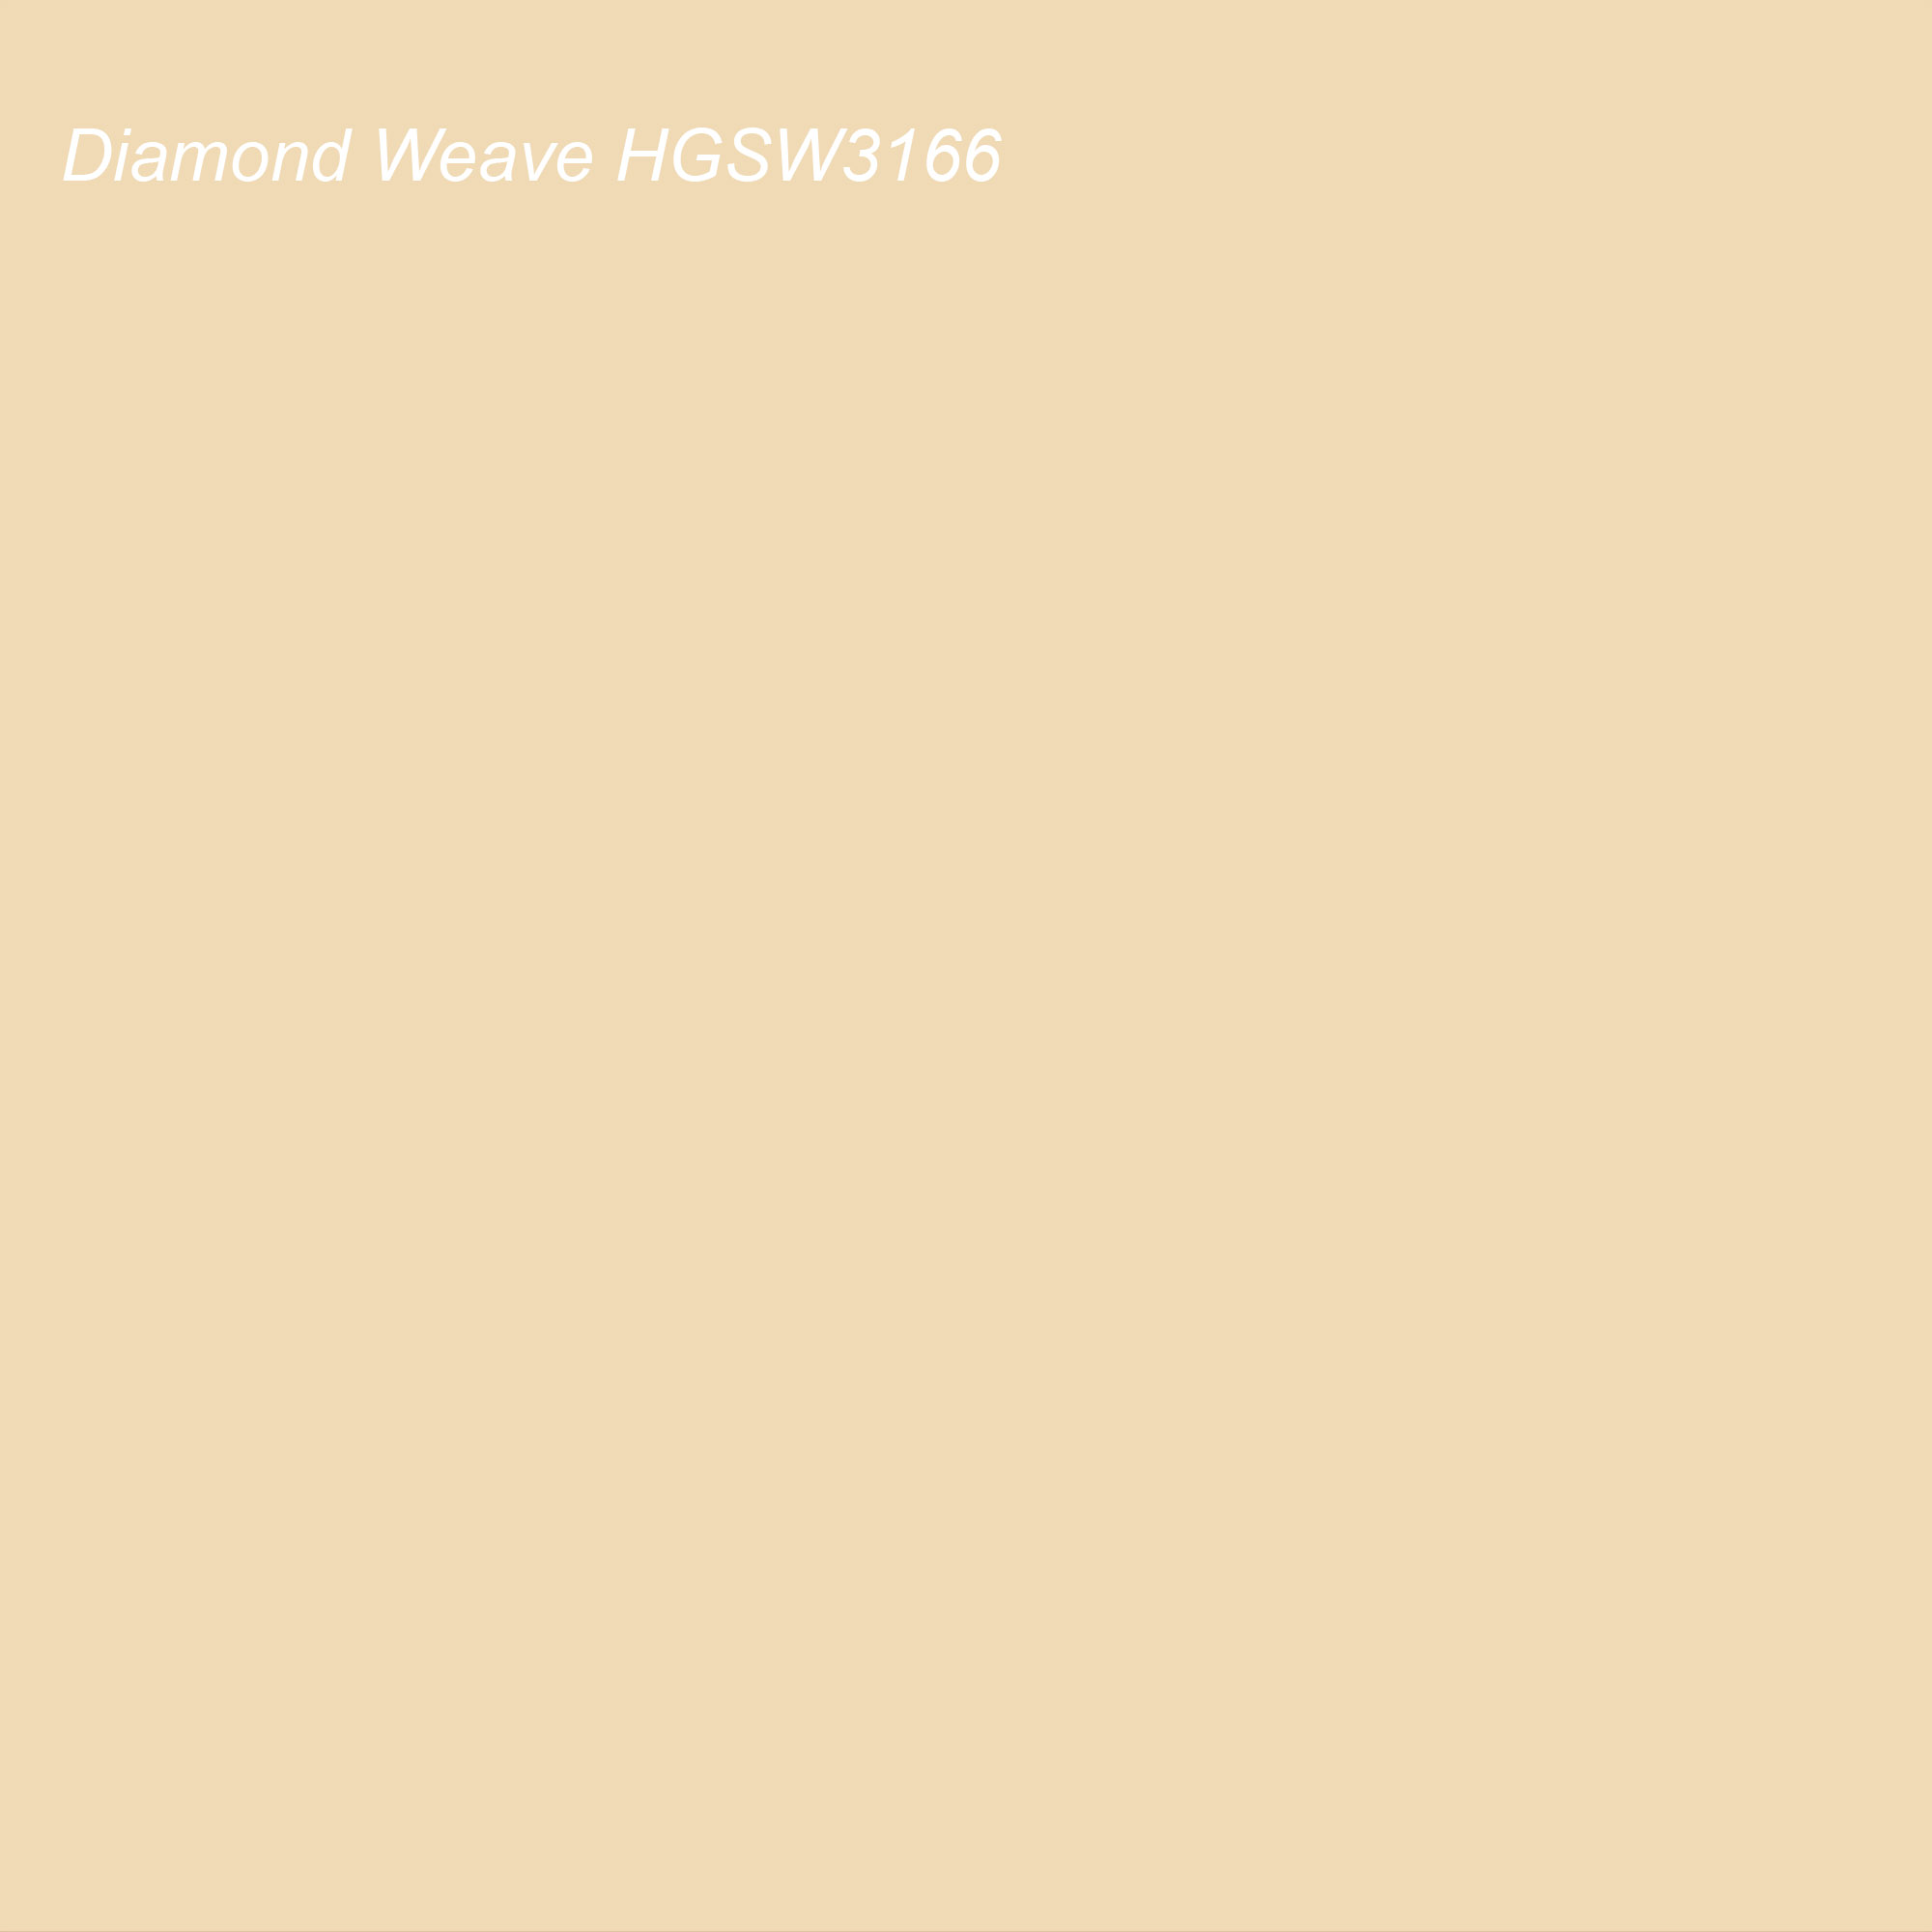 HGTV 2021 Color of the Year Suggested Accent Shade Diamond Weave HGSW3166